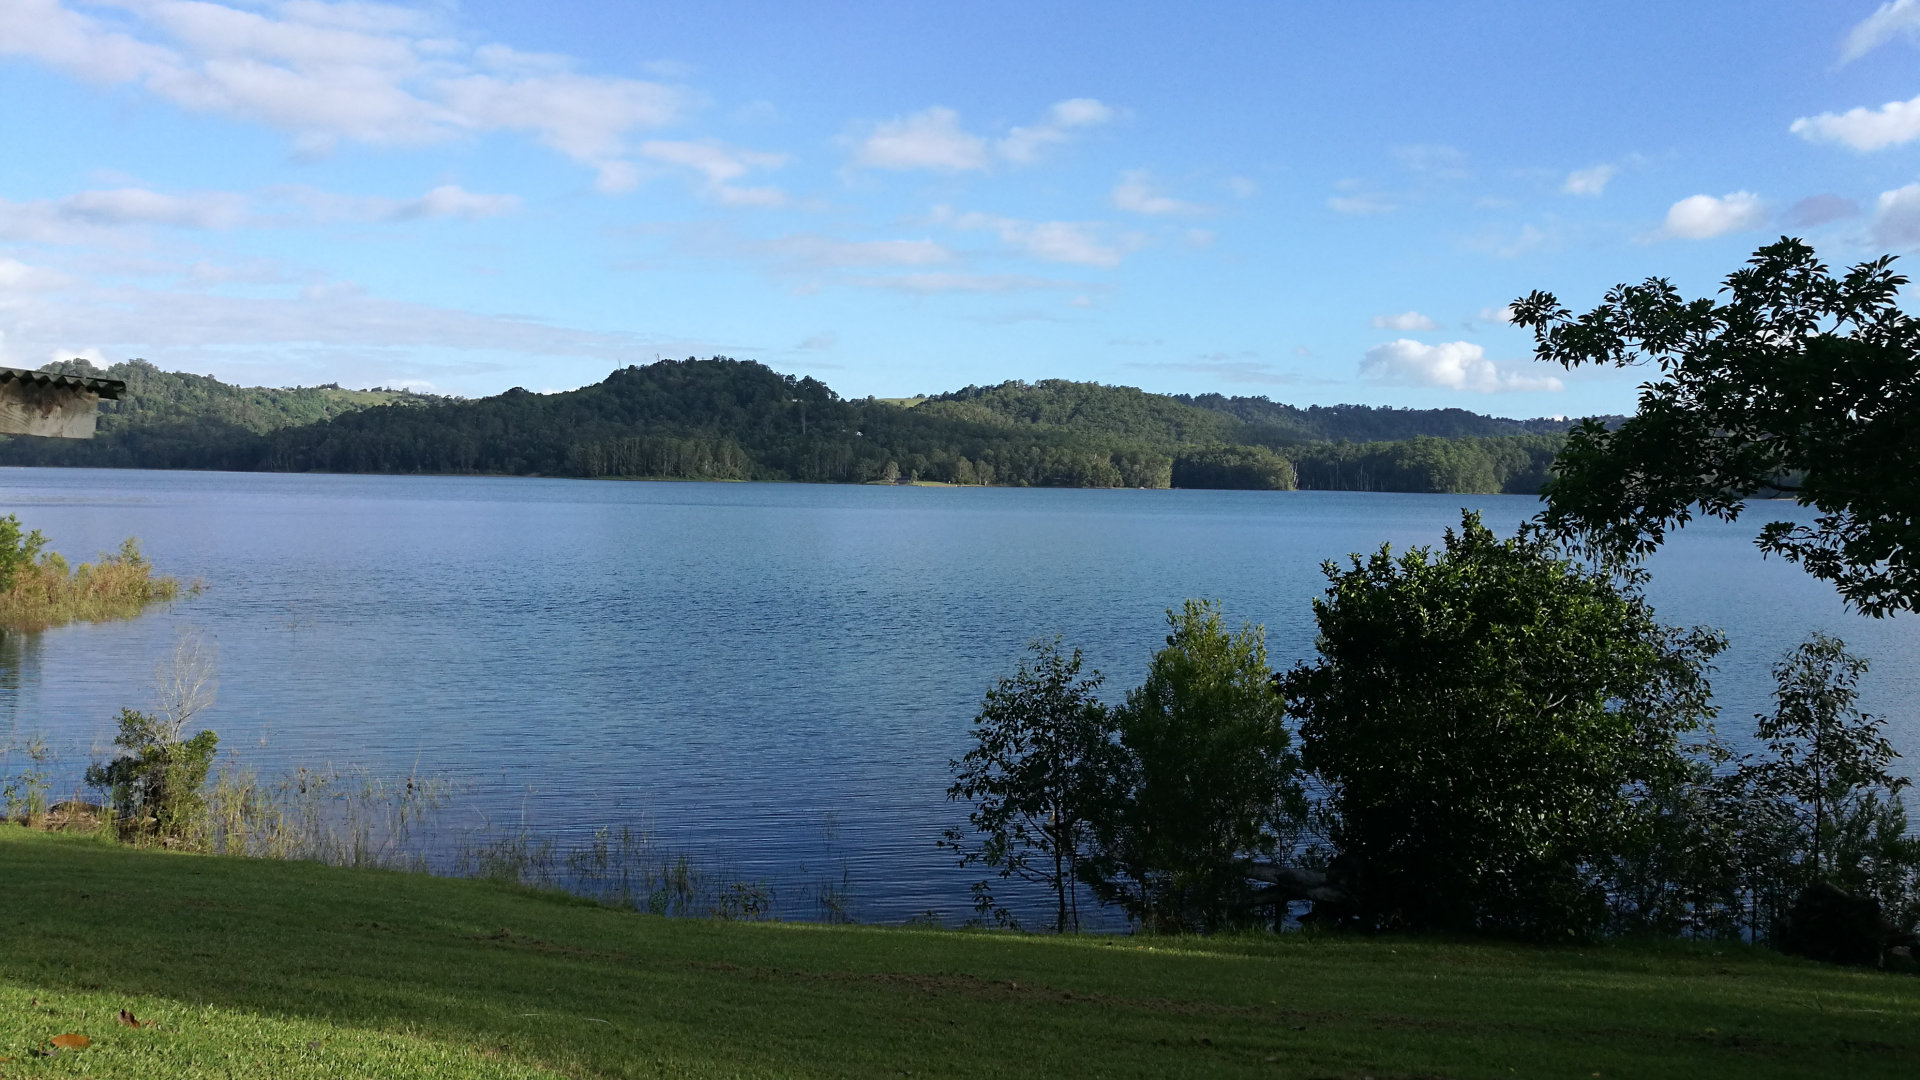 View of Lake Baroon from the northern recreational area near Montville. The lake is between Maleny and Montville on the Blackall Range. The lake is created from the Baroon Pocket Dam on the Obi Obi Creek, as a water supply for the Sunshine Coast area. The recreational area has picnic tables, BBQs and a playground.